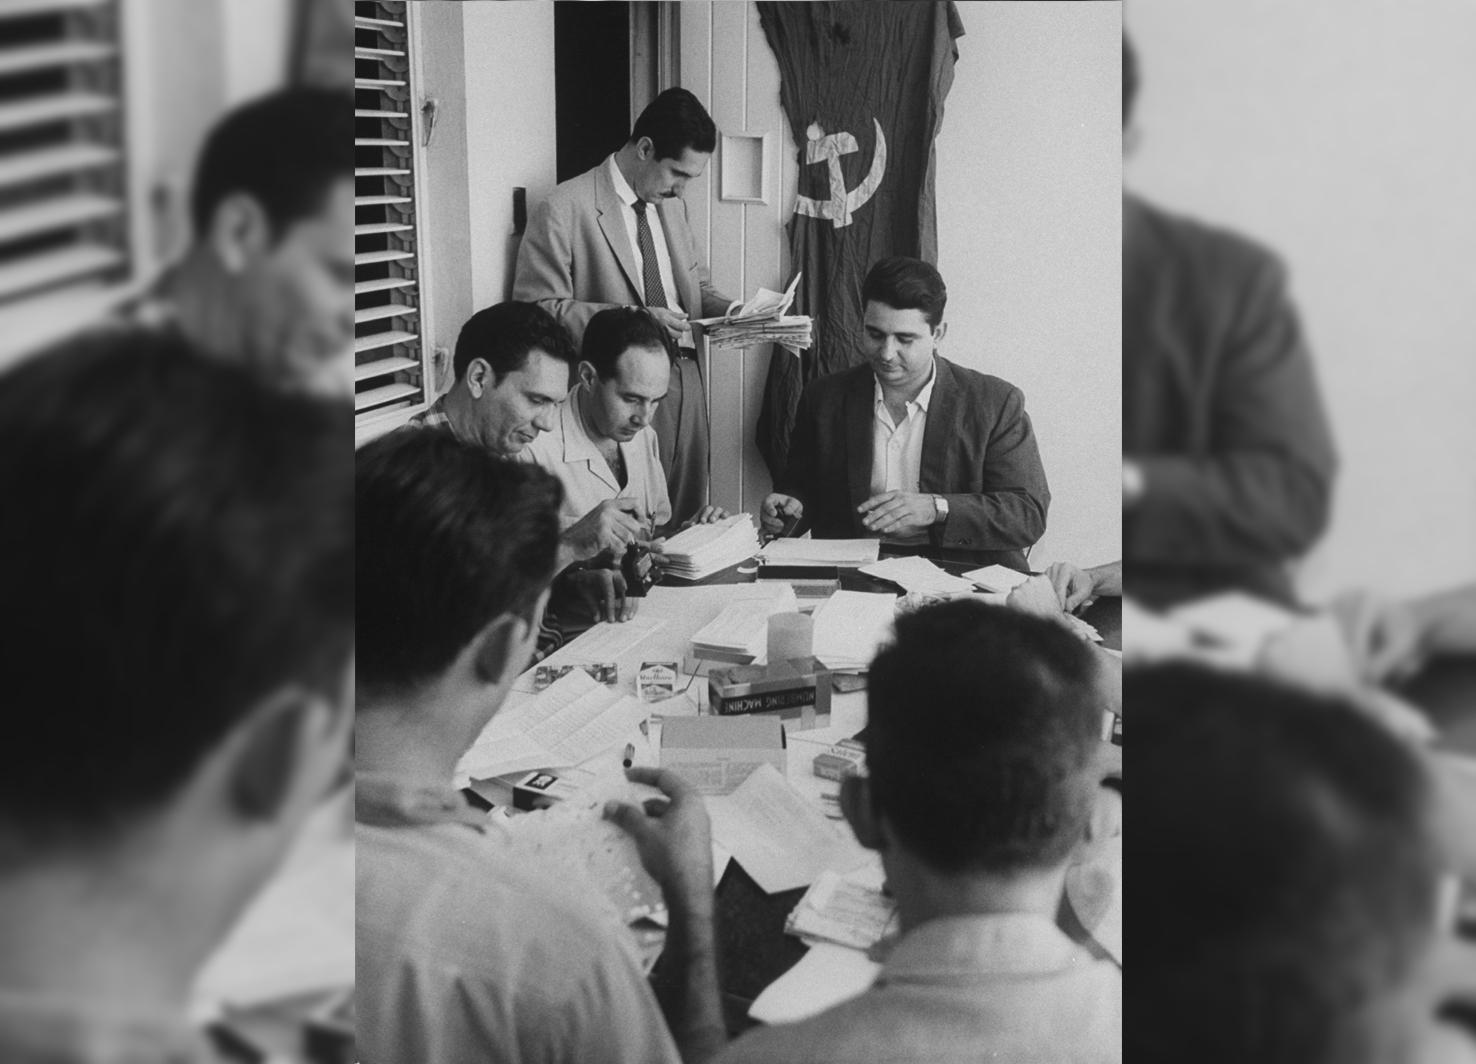 Antonio Veciana stands in a meeting with members of the anti-Castro action group Alpha 66, on October 1, 1962.